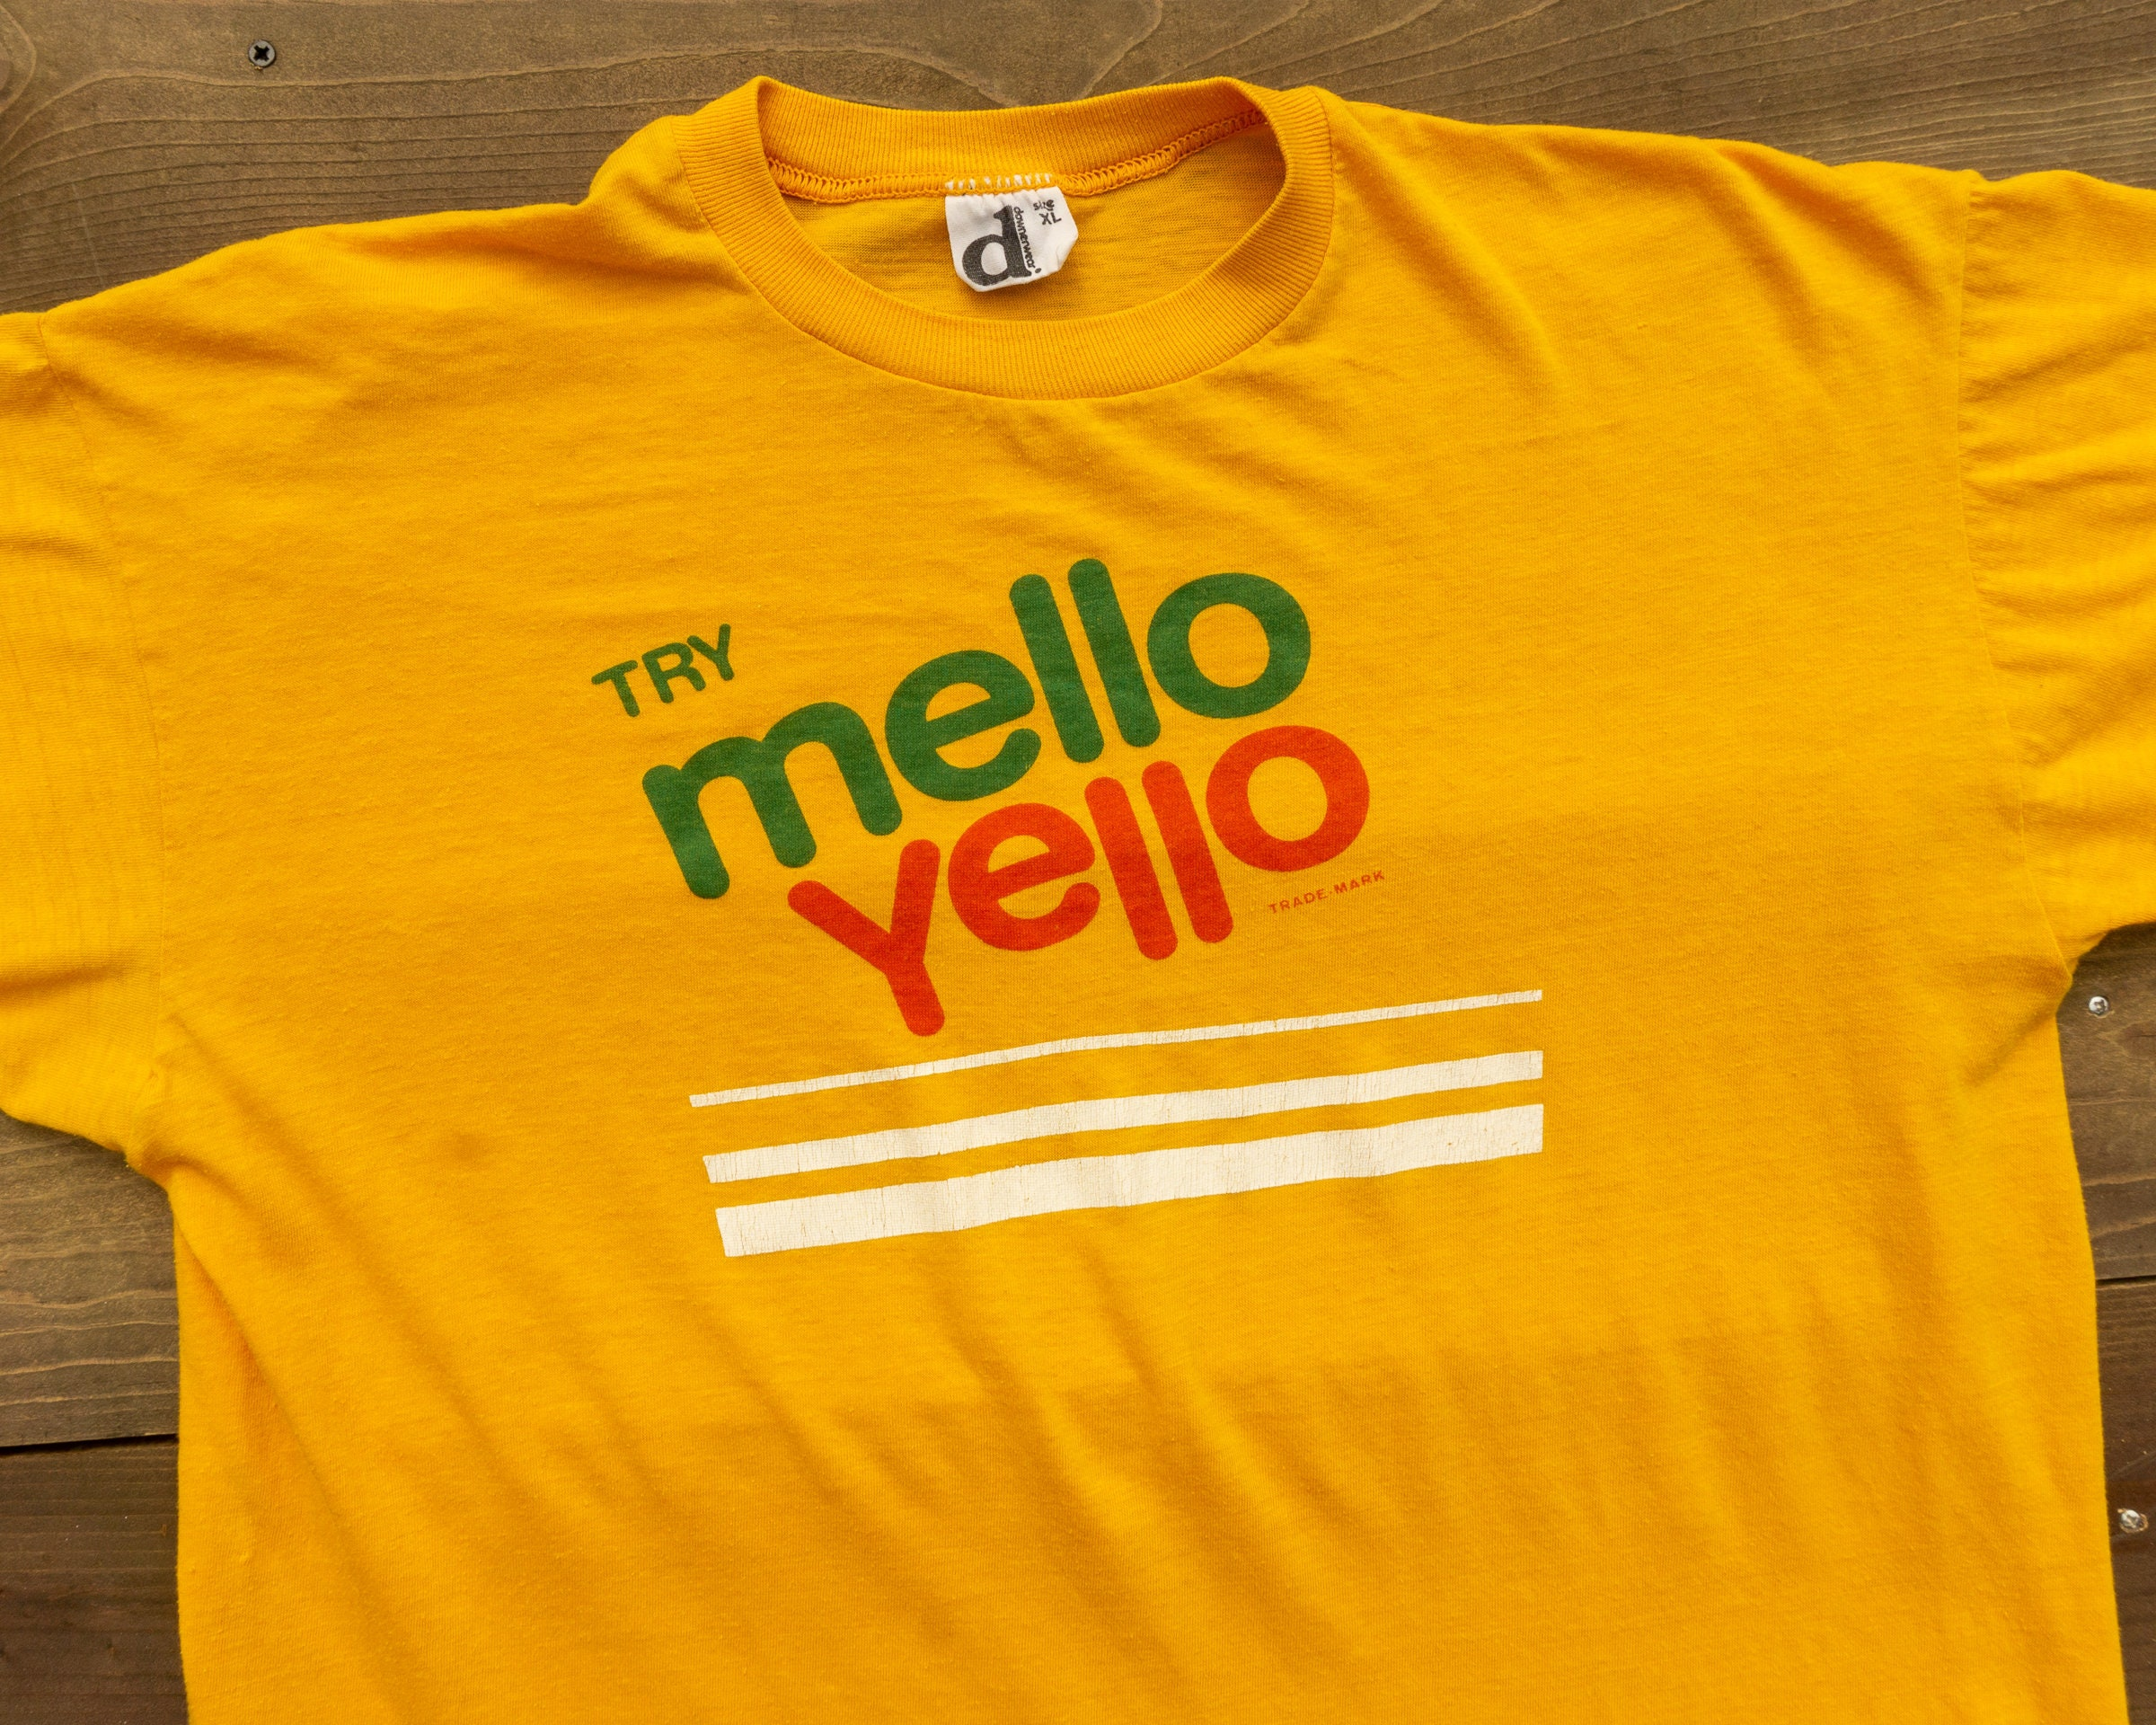 80s Tops, Shirts, T-shirts, Blouse   90s T-shirts 80S Vintage Try Mellow Yellow Paper Thin T-Shirt $40.00 AT vintagedancer.com